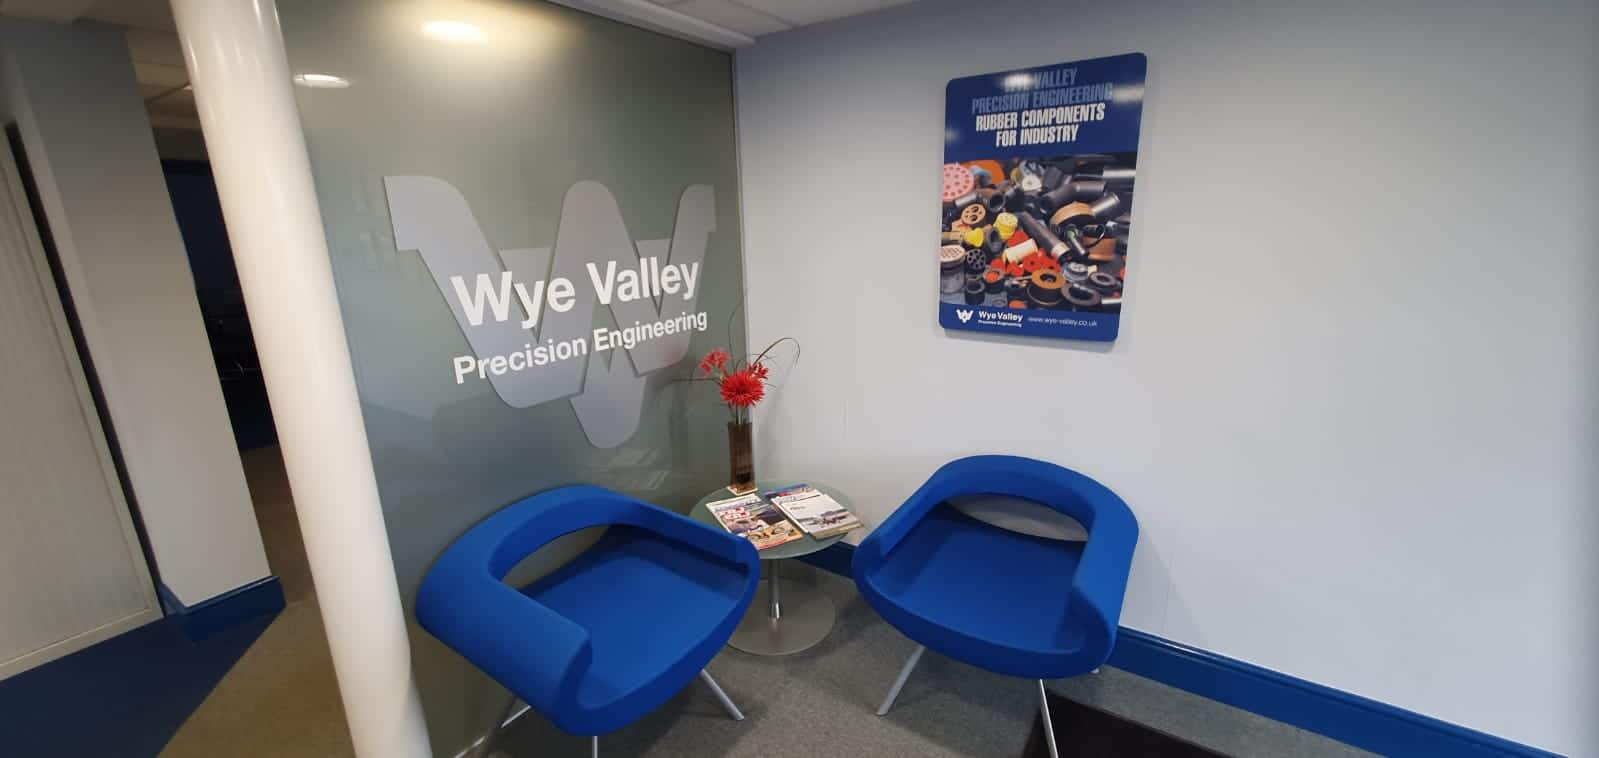 Wye Valley reception